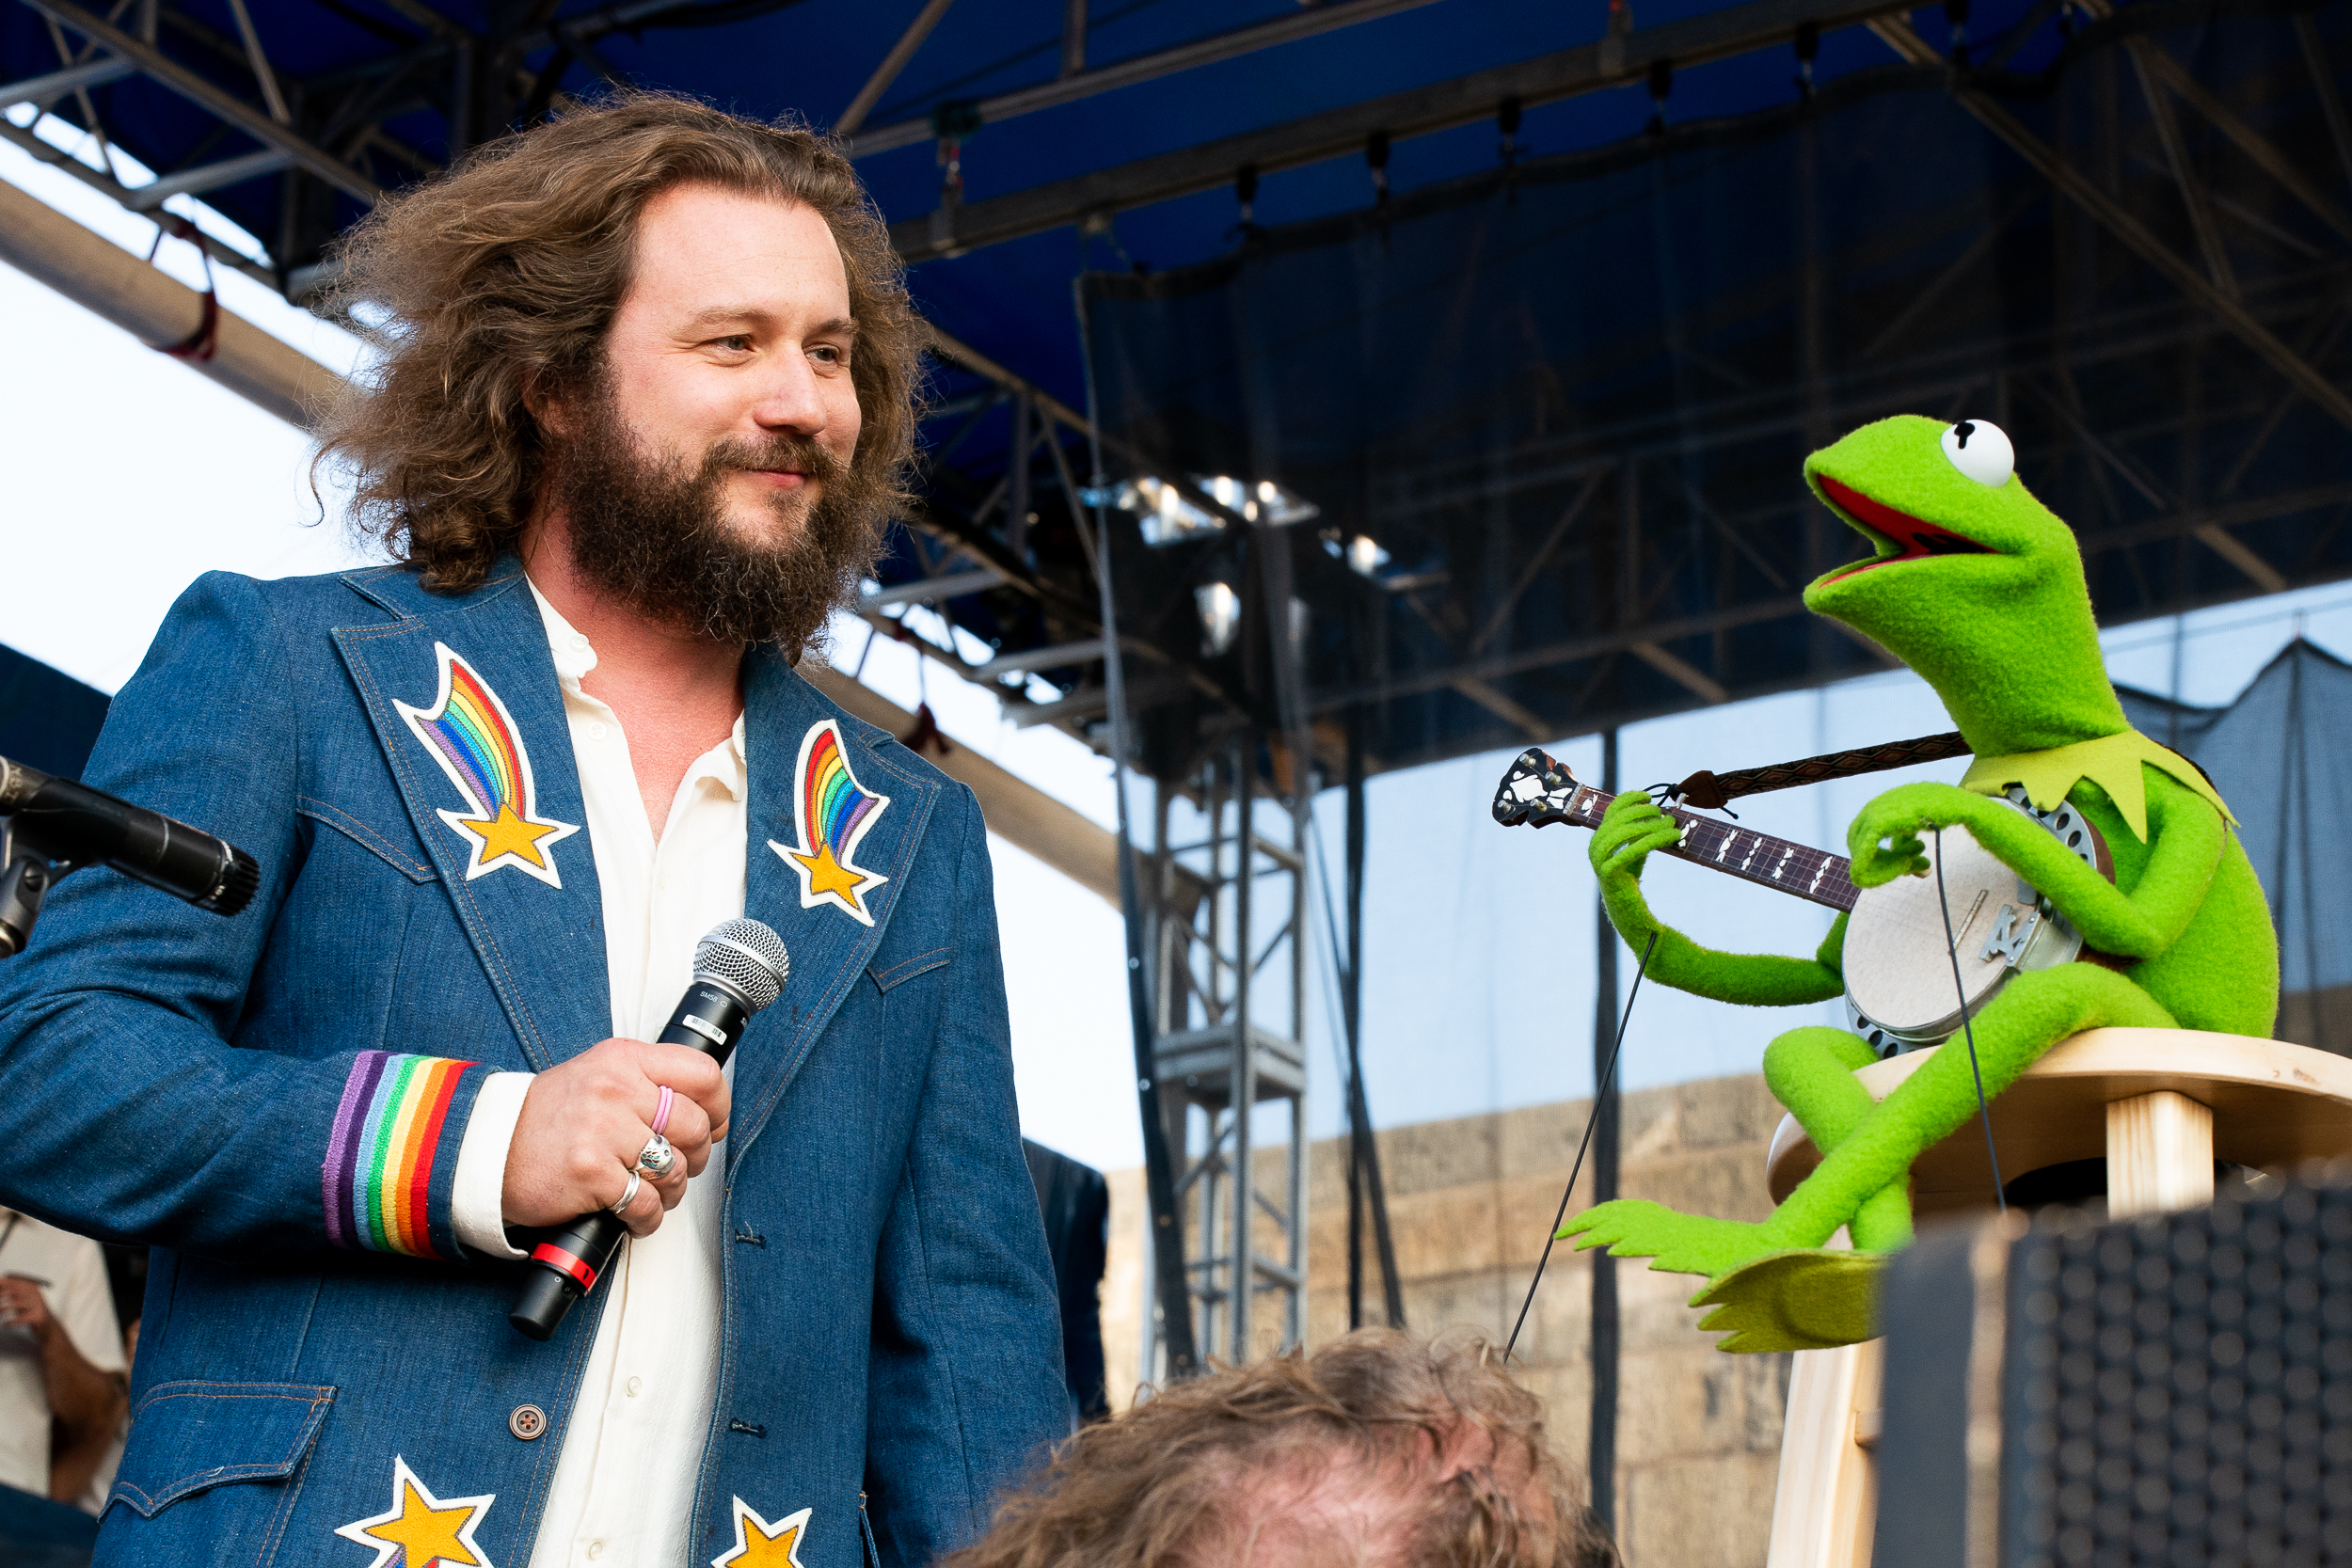 Jim James and Kermit the Frog at Newport Music Festival (Photo by Mauricio Castro)